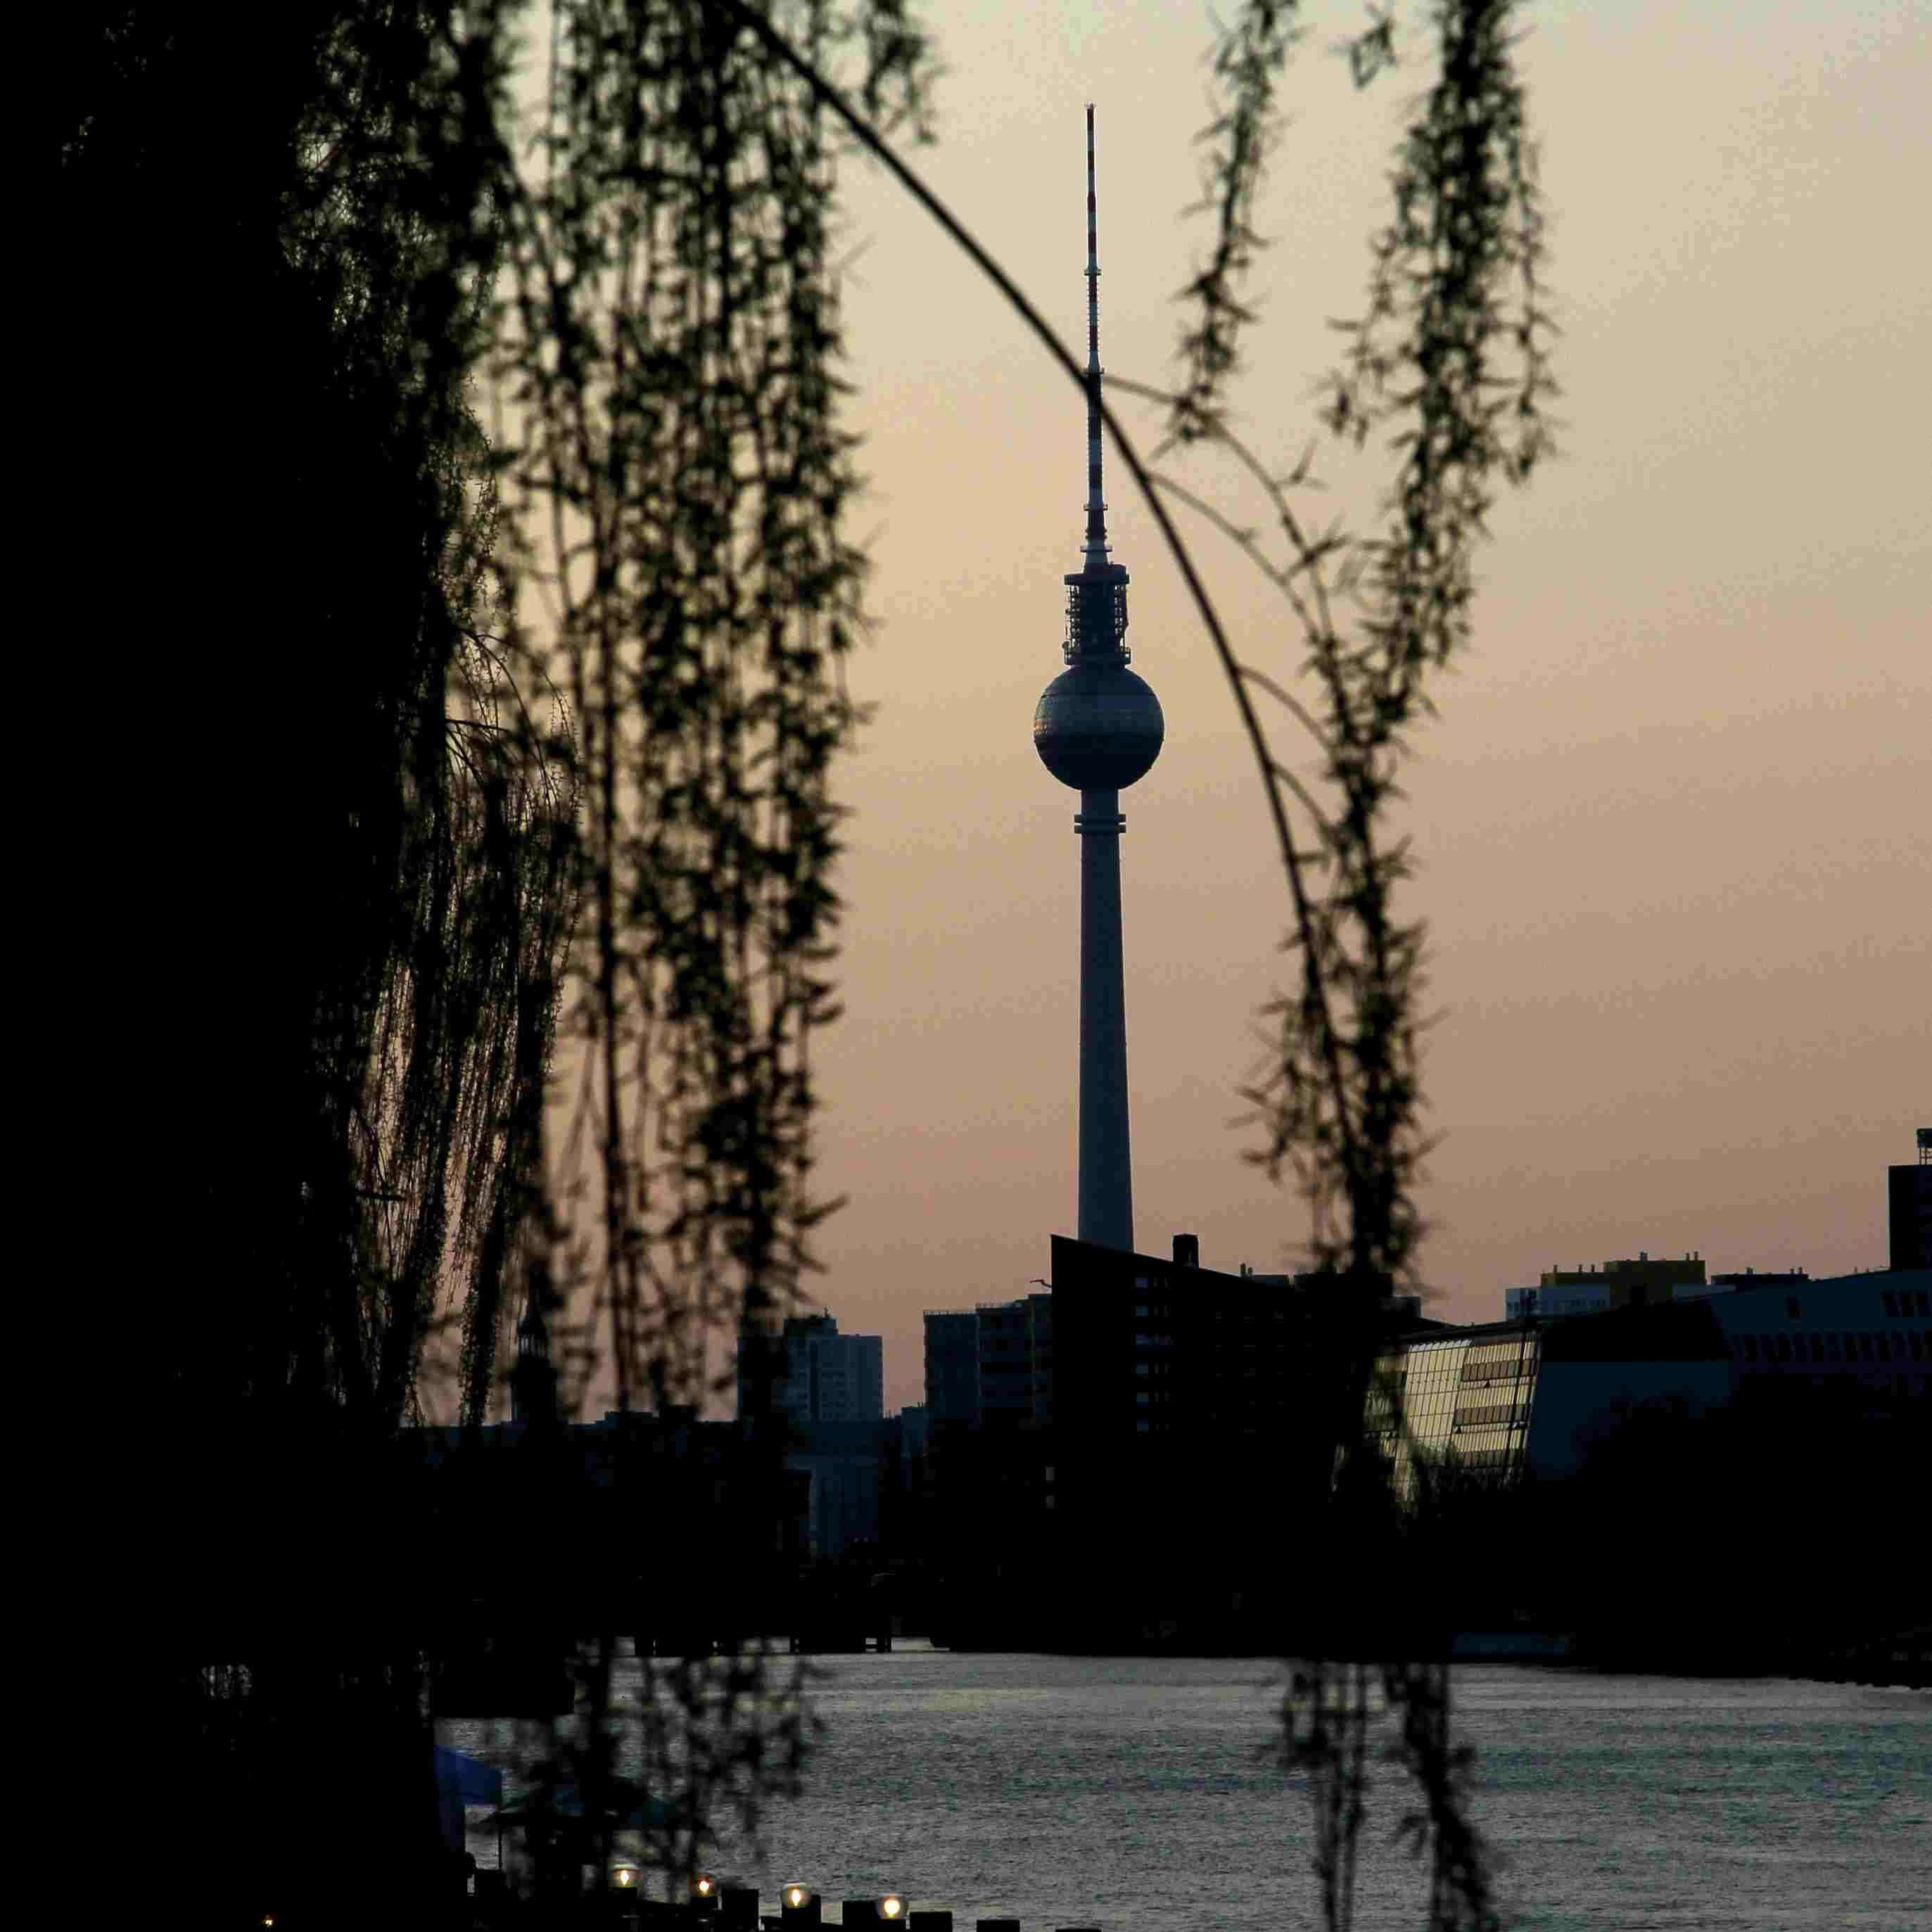 View of the TV Tower in Berlin